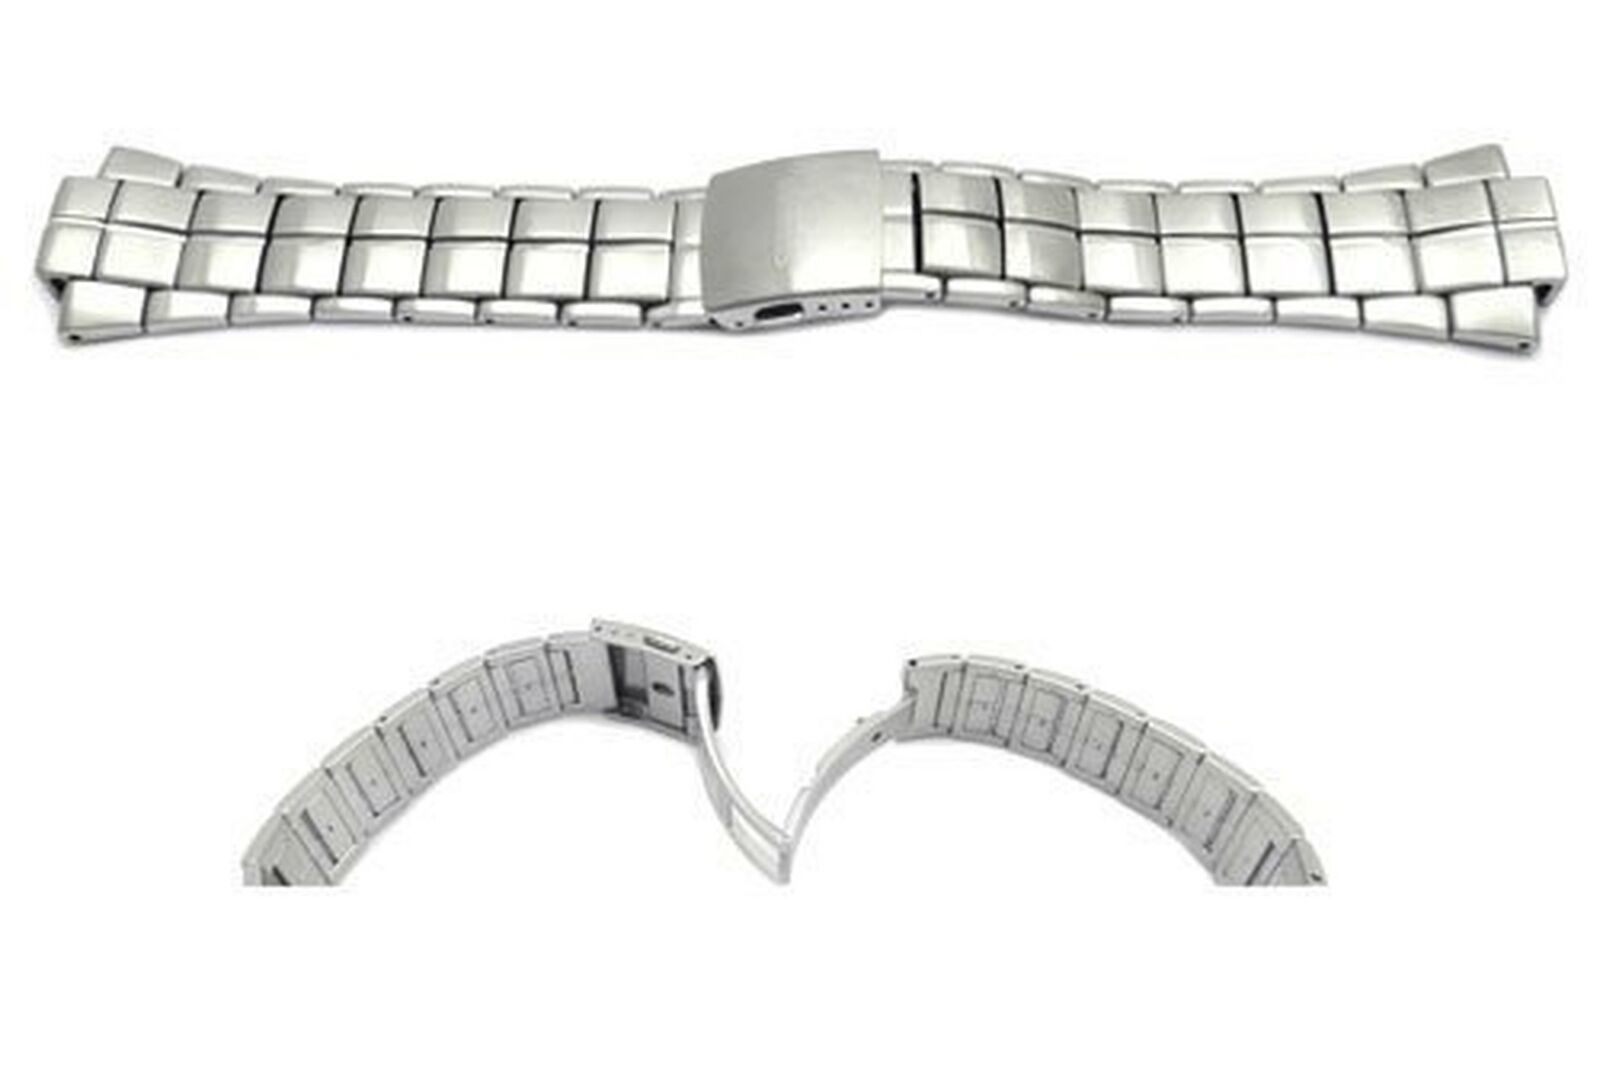 Seiko Stainless Steel Sportura 28mm Watch Strap SHIPSFREE - $90.00